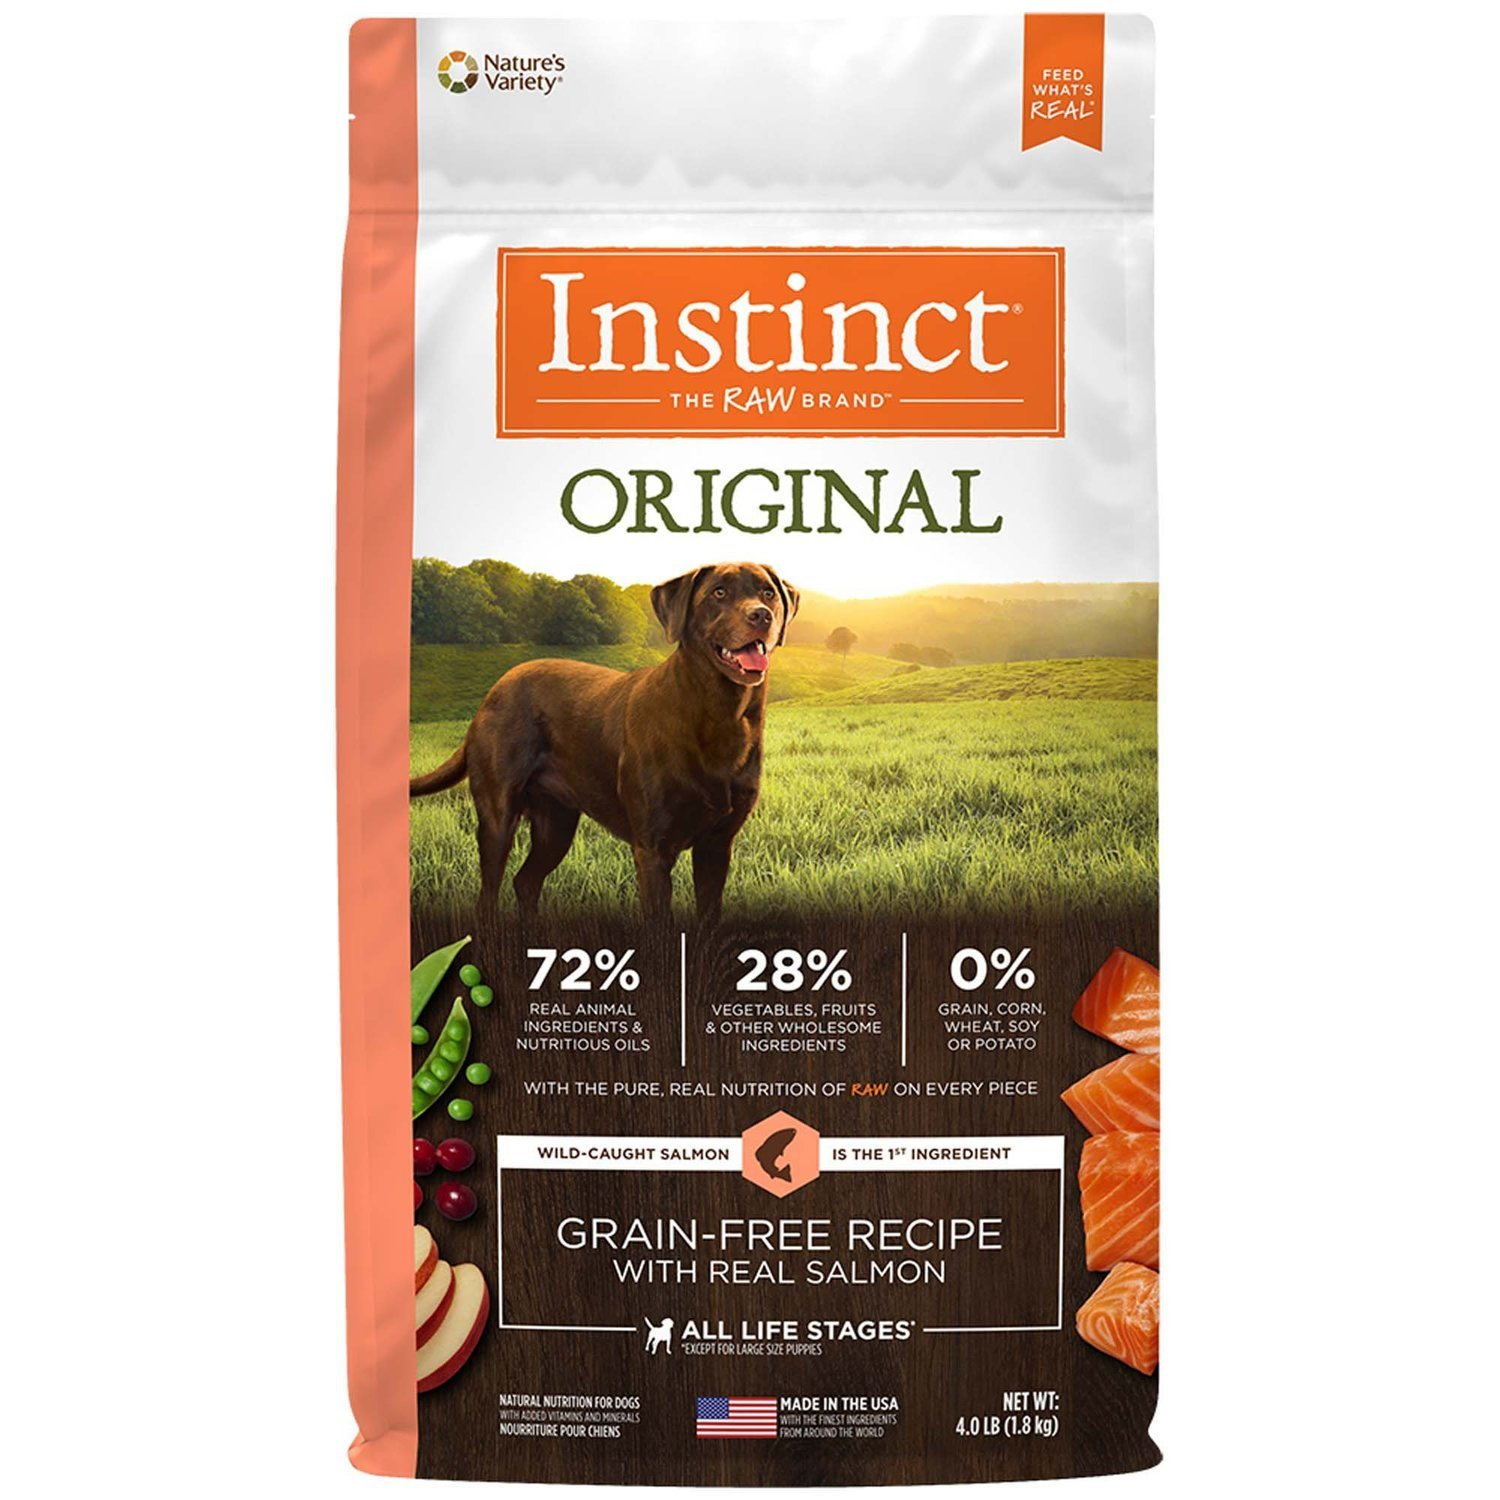 Nature's Variety Instinct Original Grain Free Salmon Dry Dog Food, 4 lbs. (2/19) (A.J3)